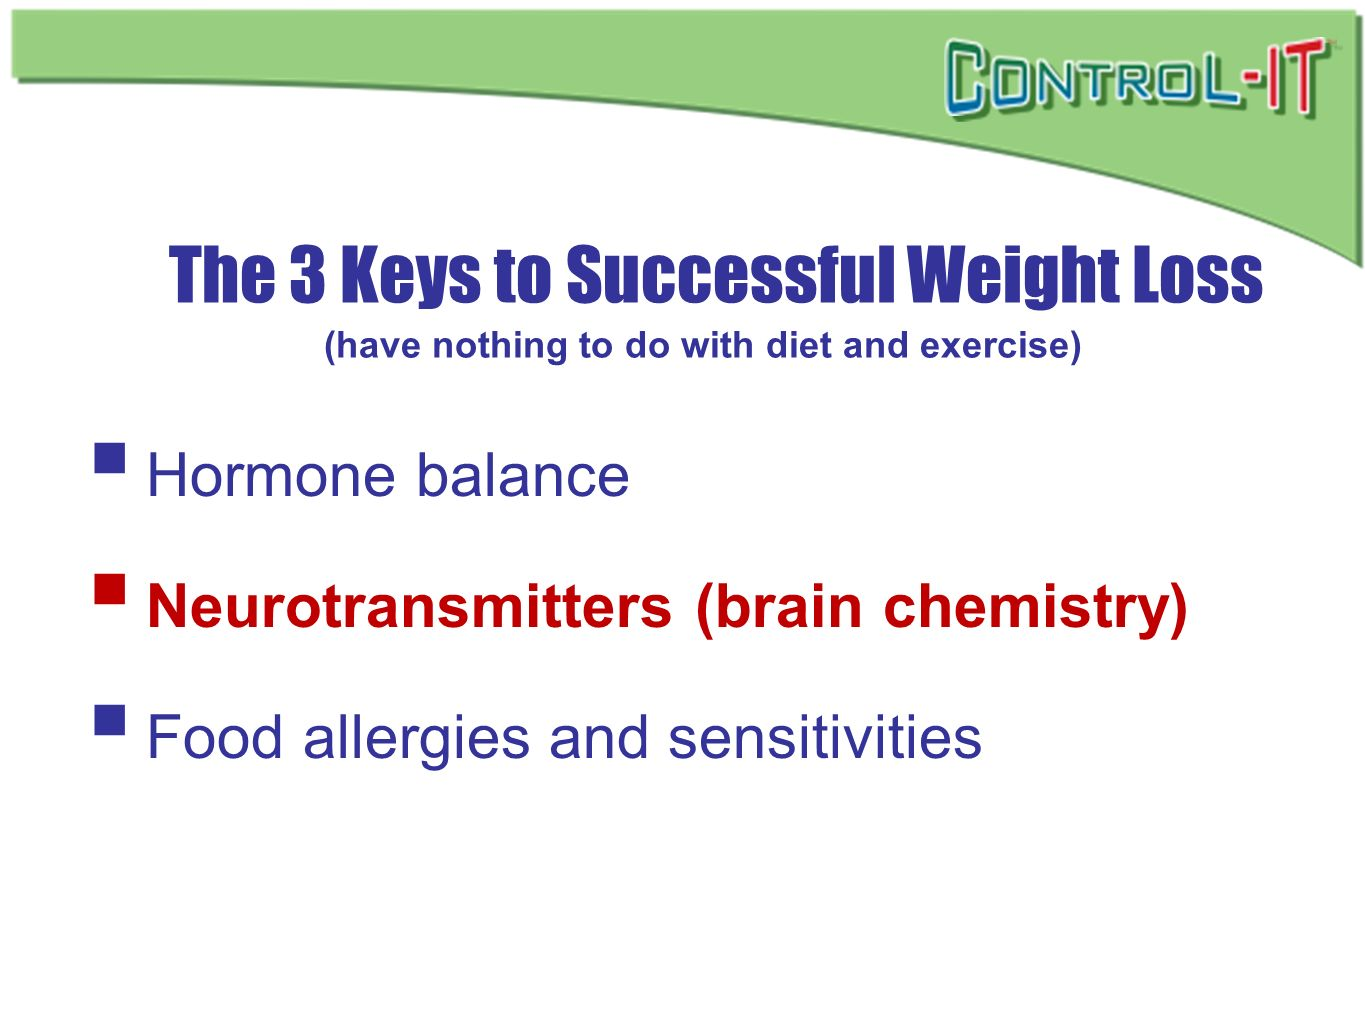 The 3 Keys to Successful Weight Loss (have nothing to do with diet and exercise)